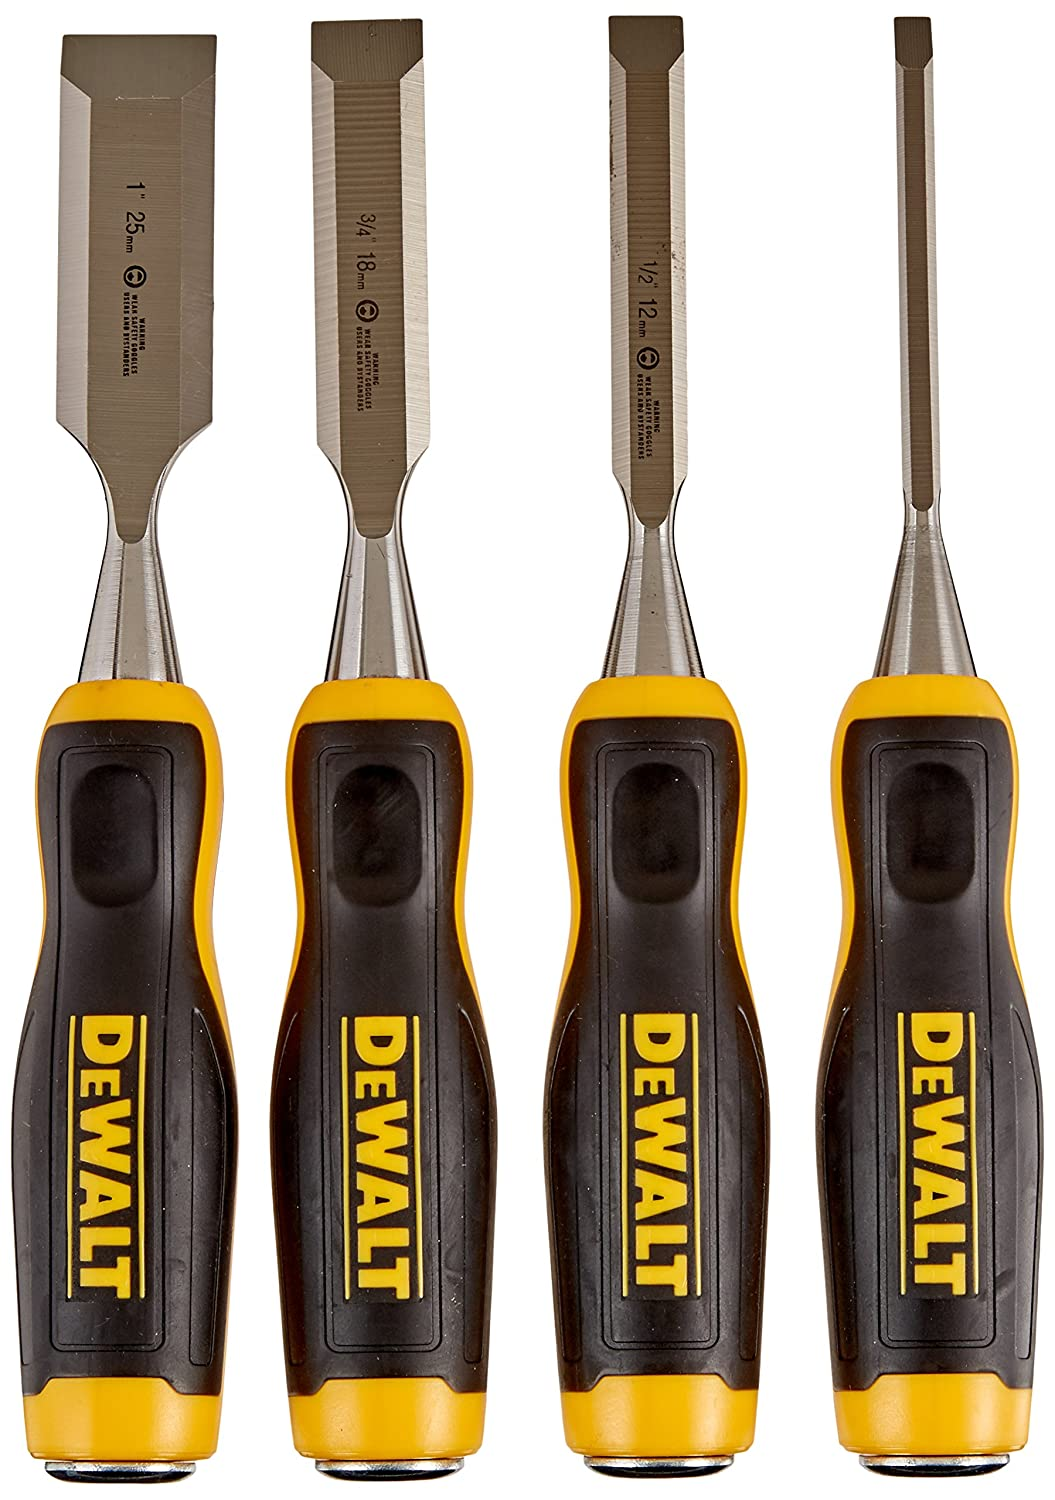 DEWALT DWHT16063 Short Blade Wood Chisel 4piece set